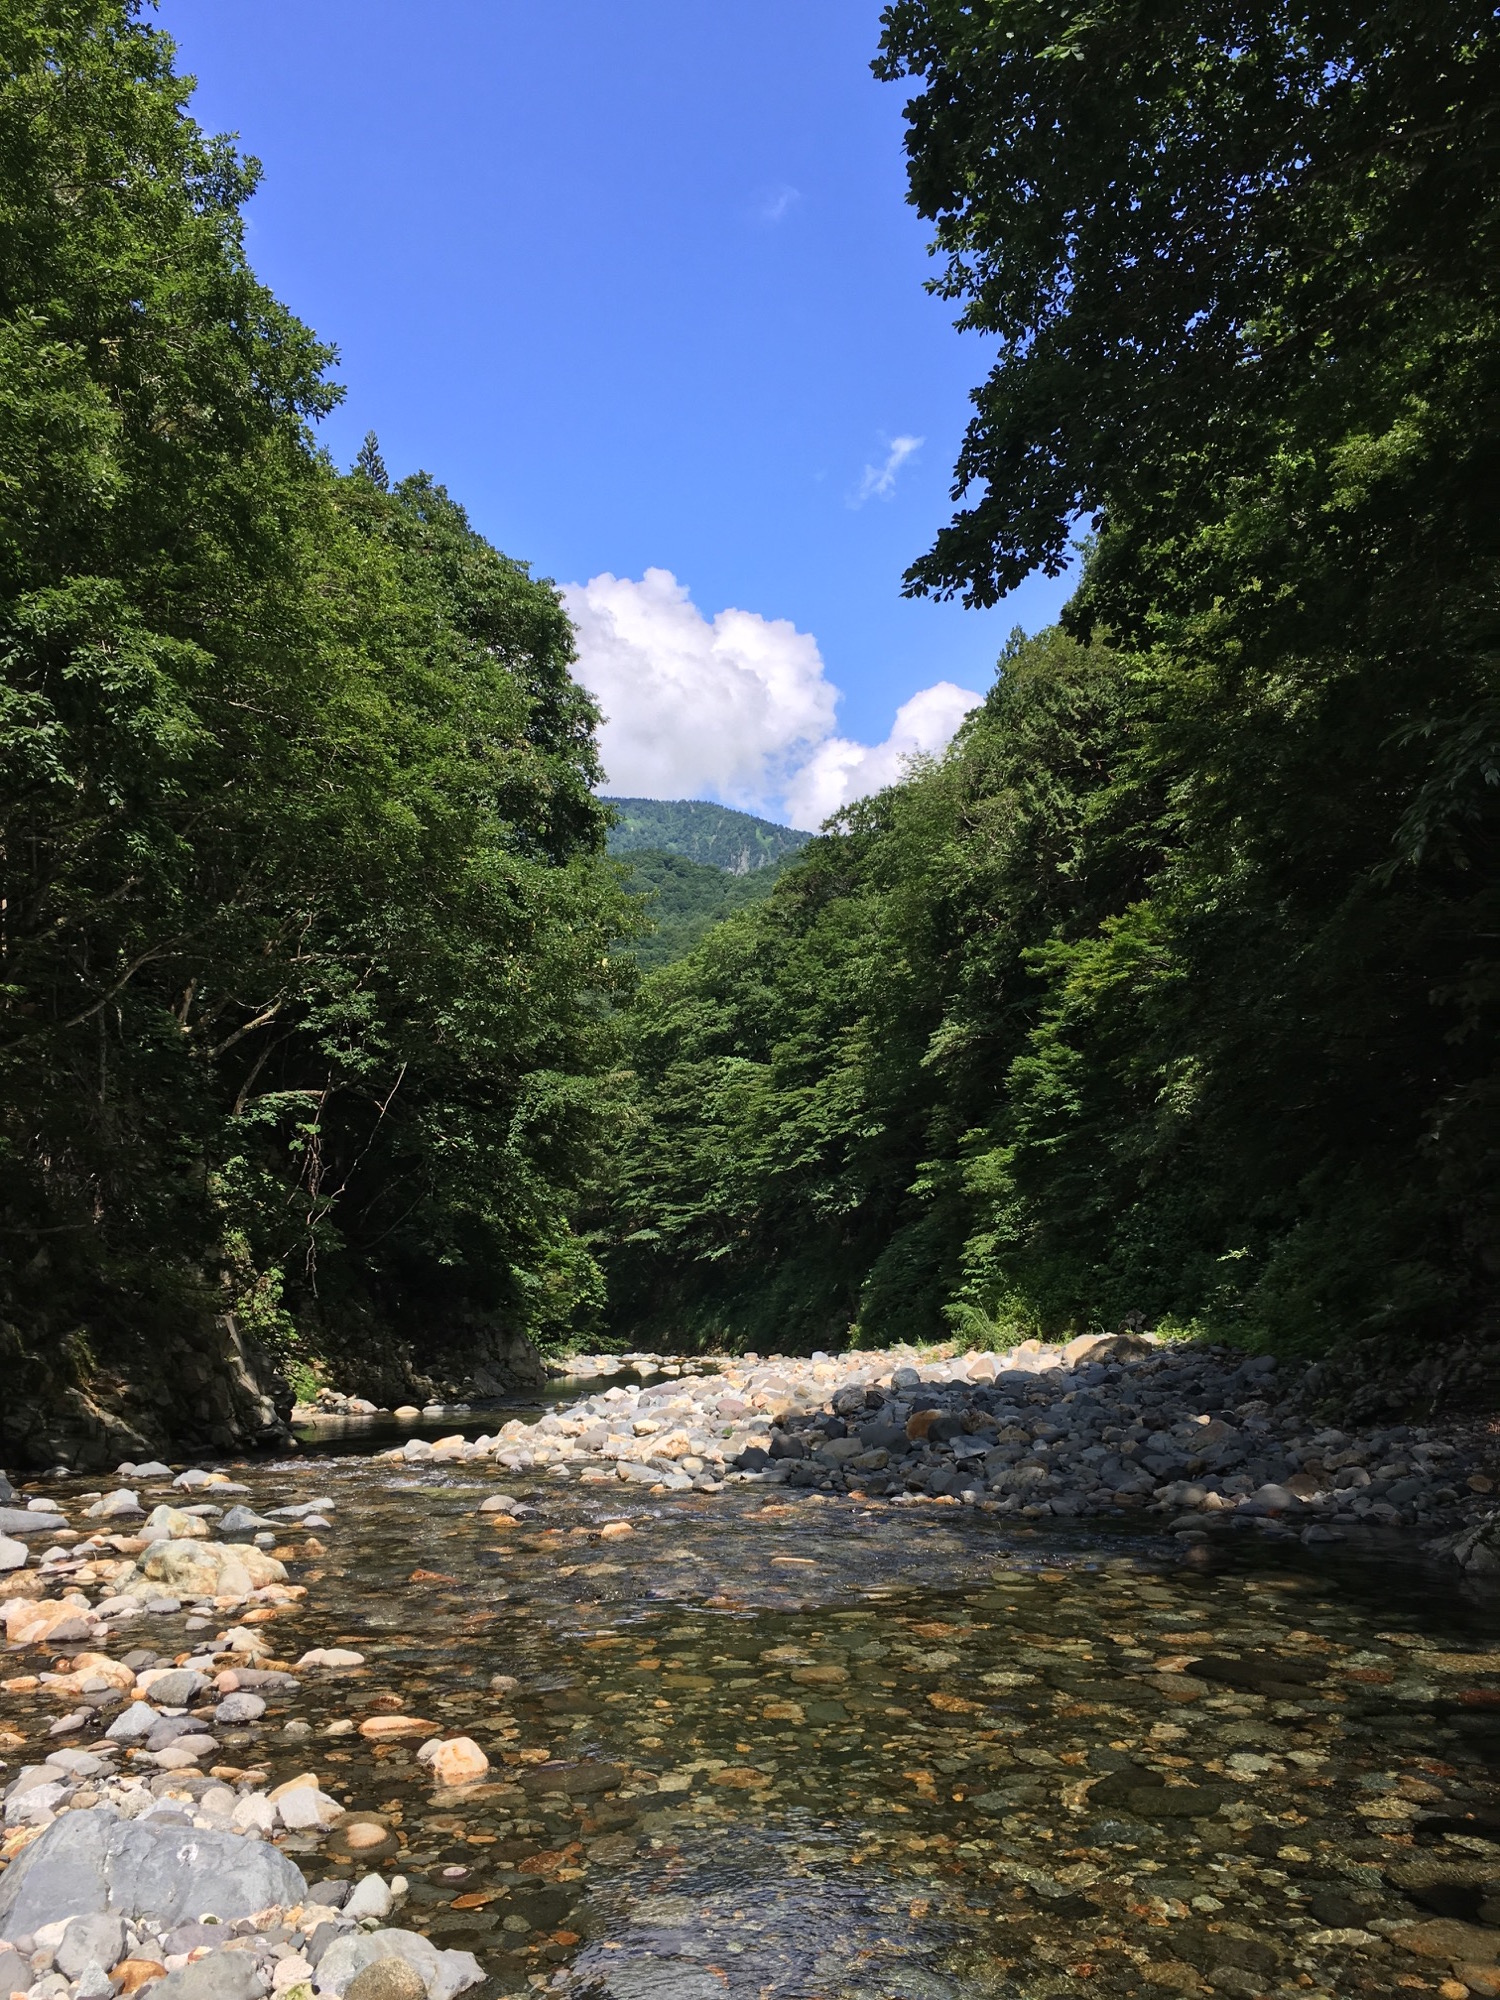 Mountain stream with blue skies and a tree covered mountain